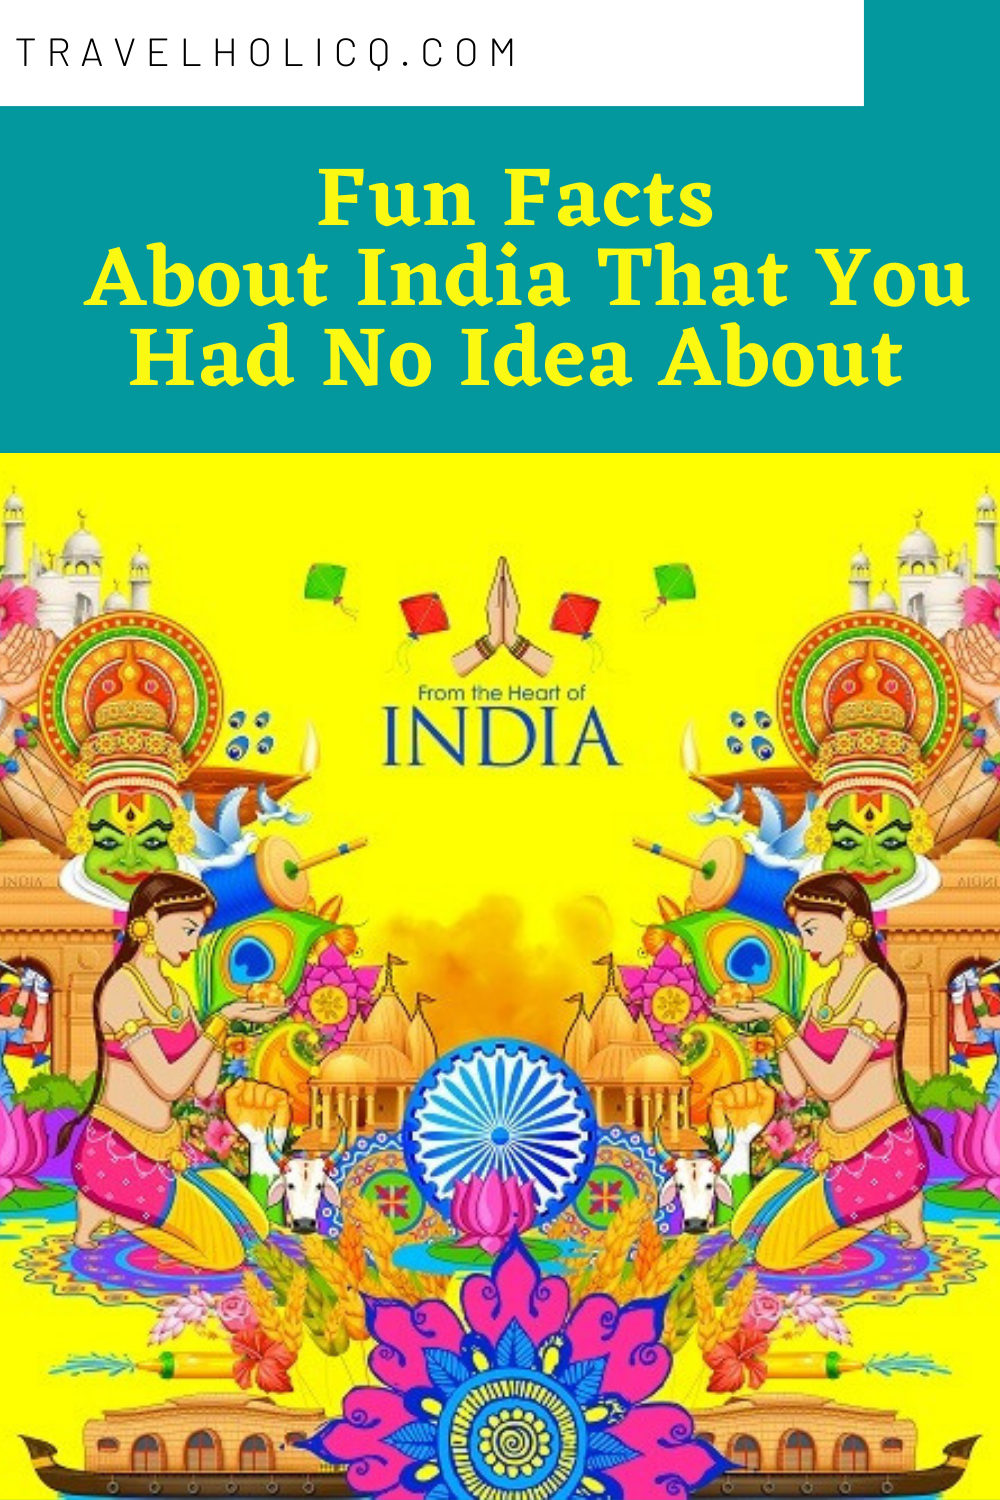 Fun Facts About India That You Had No Idea About